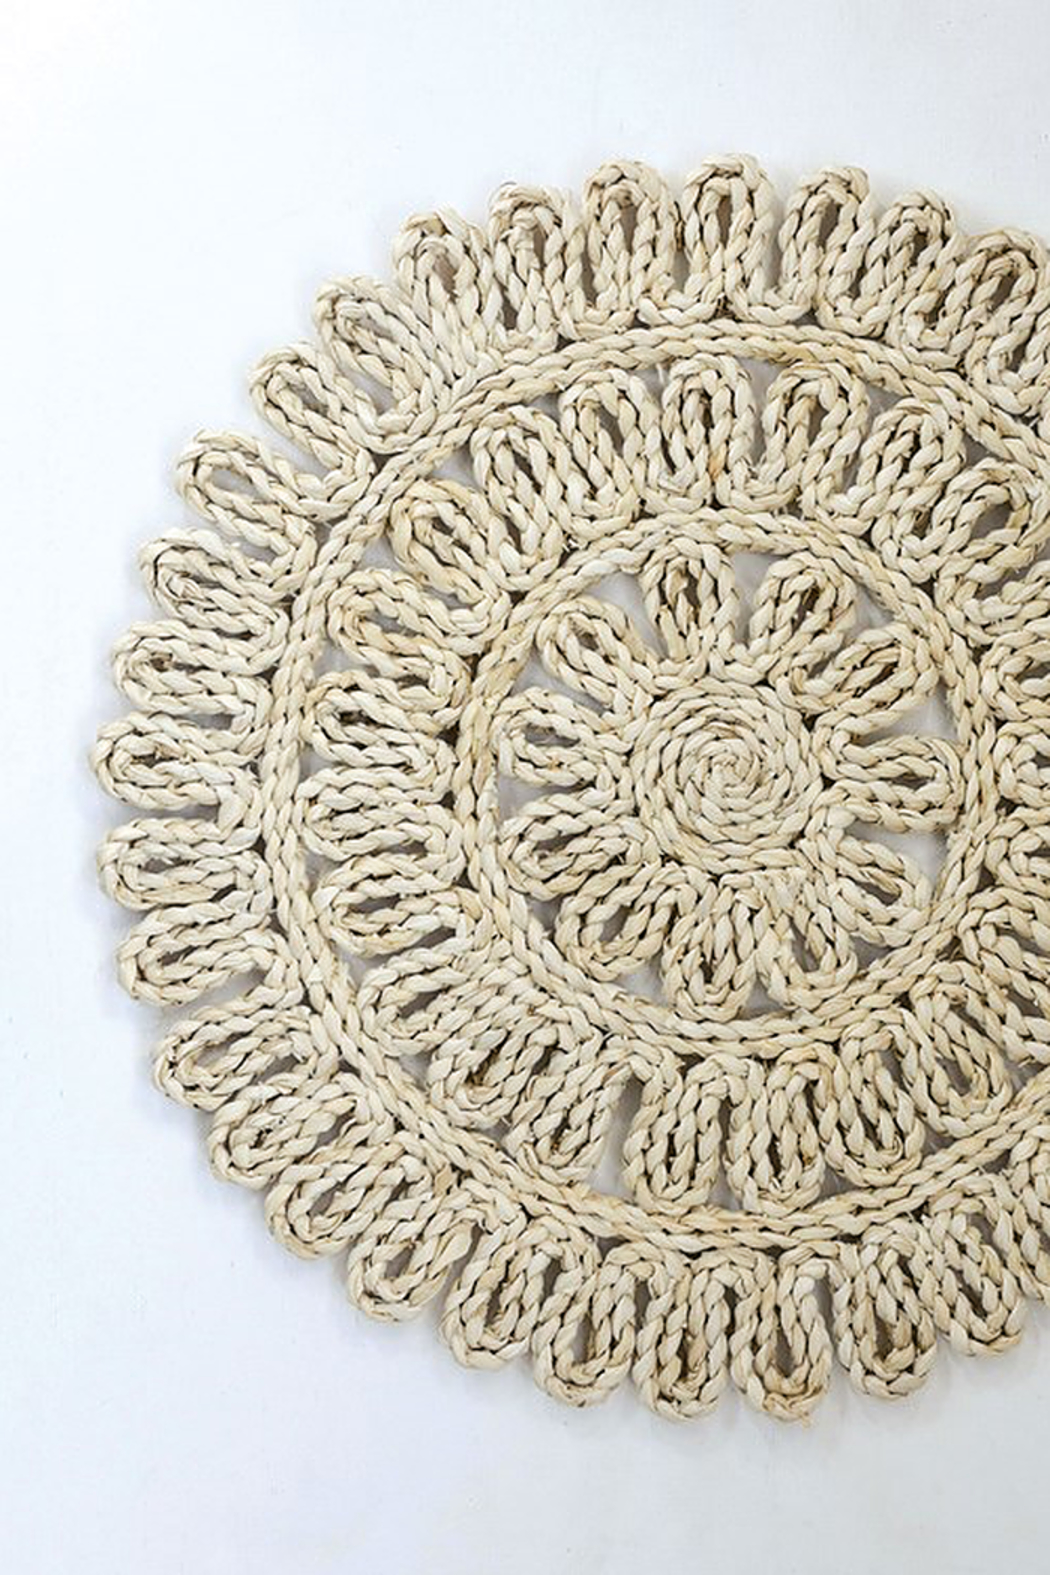 Creative Co-Op Woven Straw Placemat 15in Round In Natural - Main Image